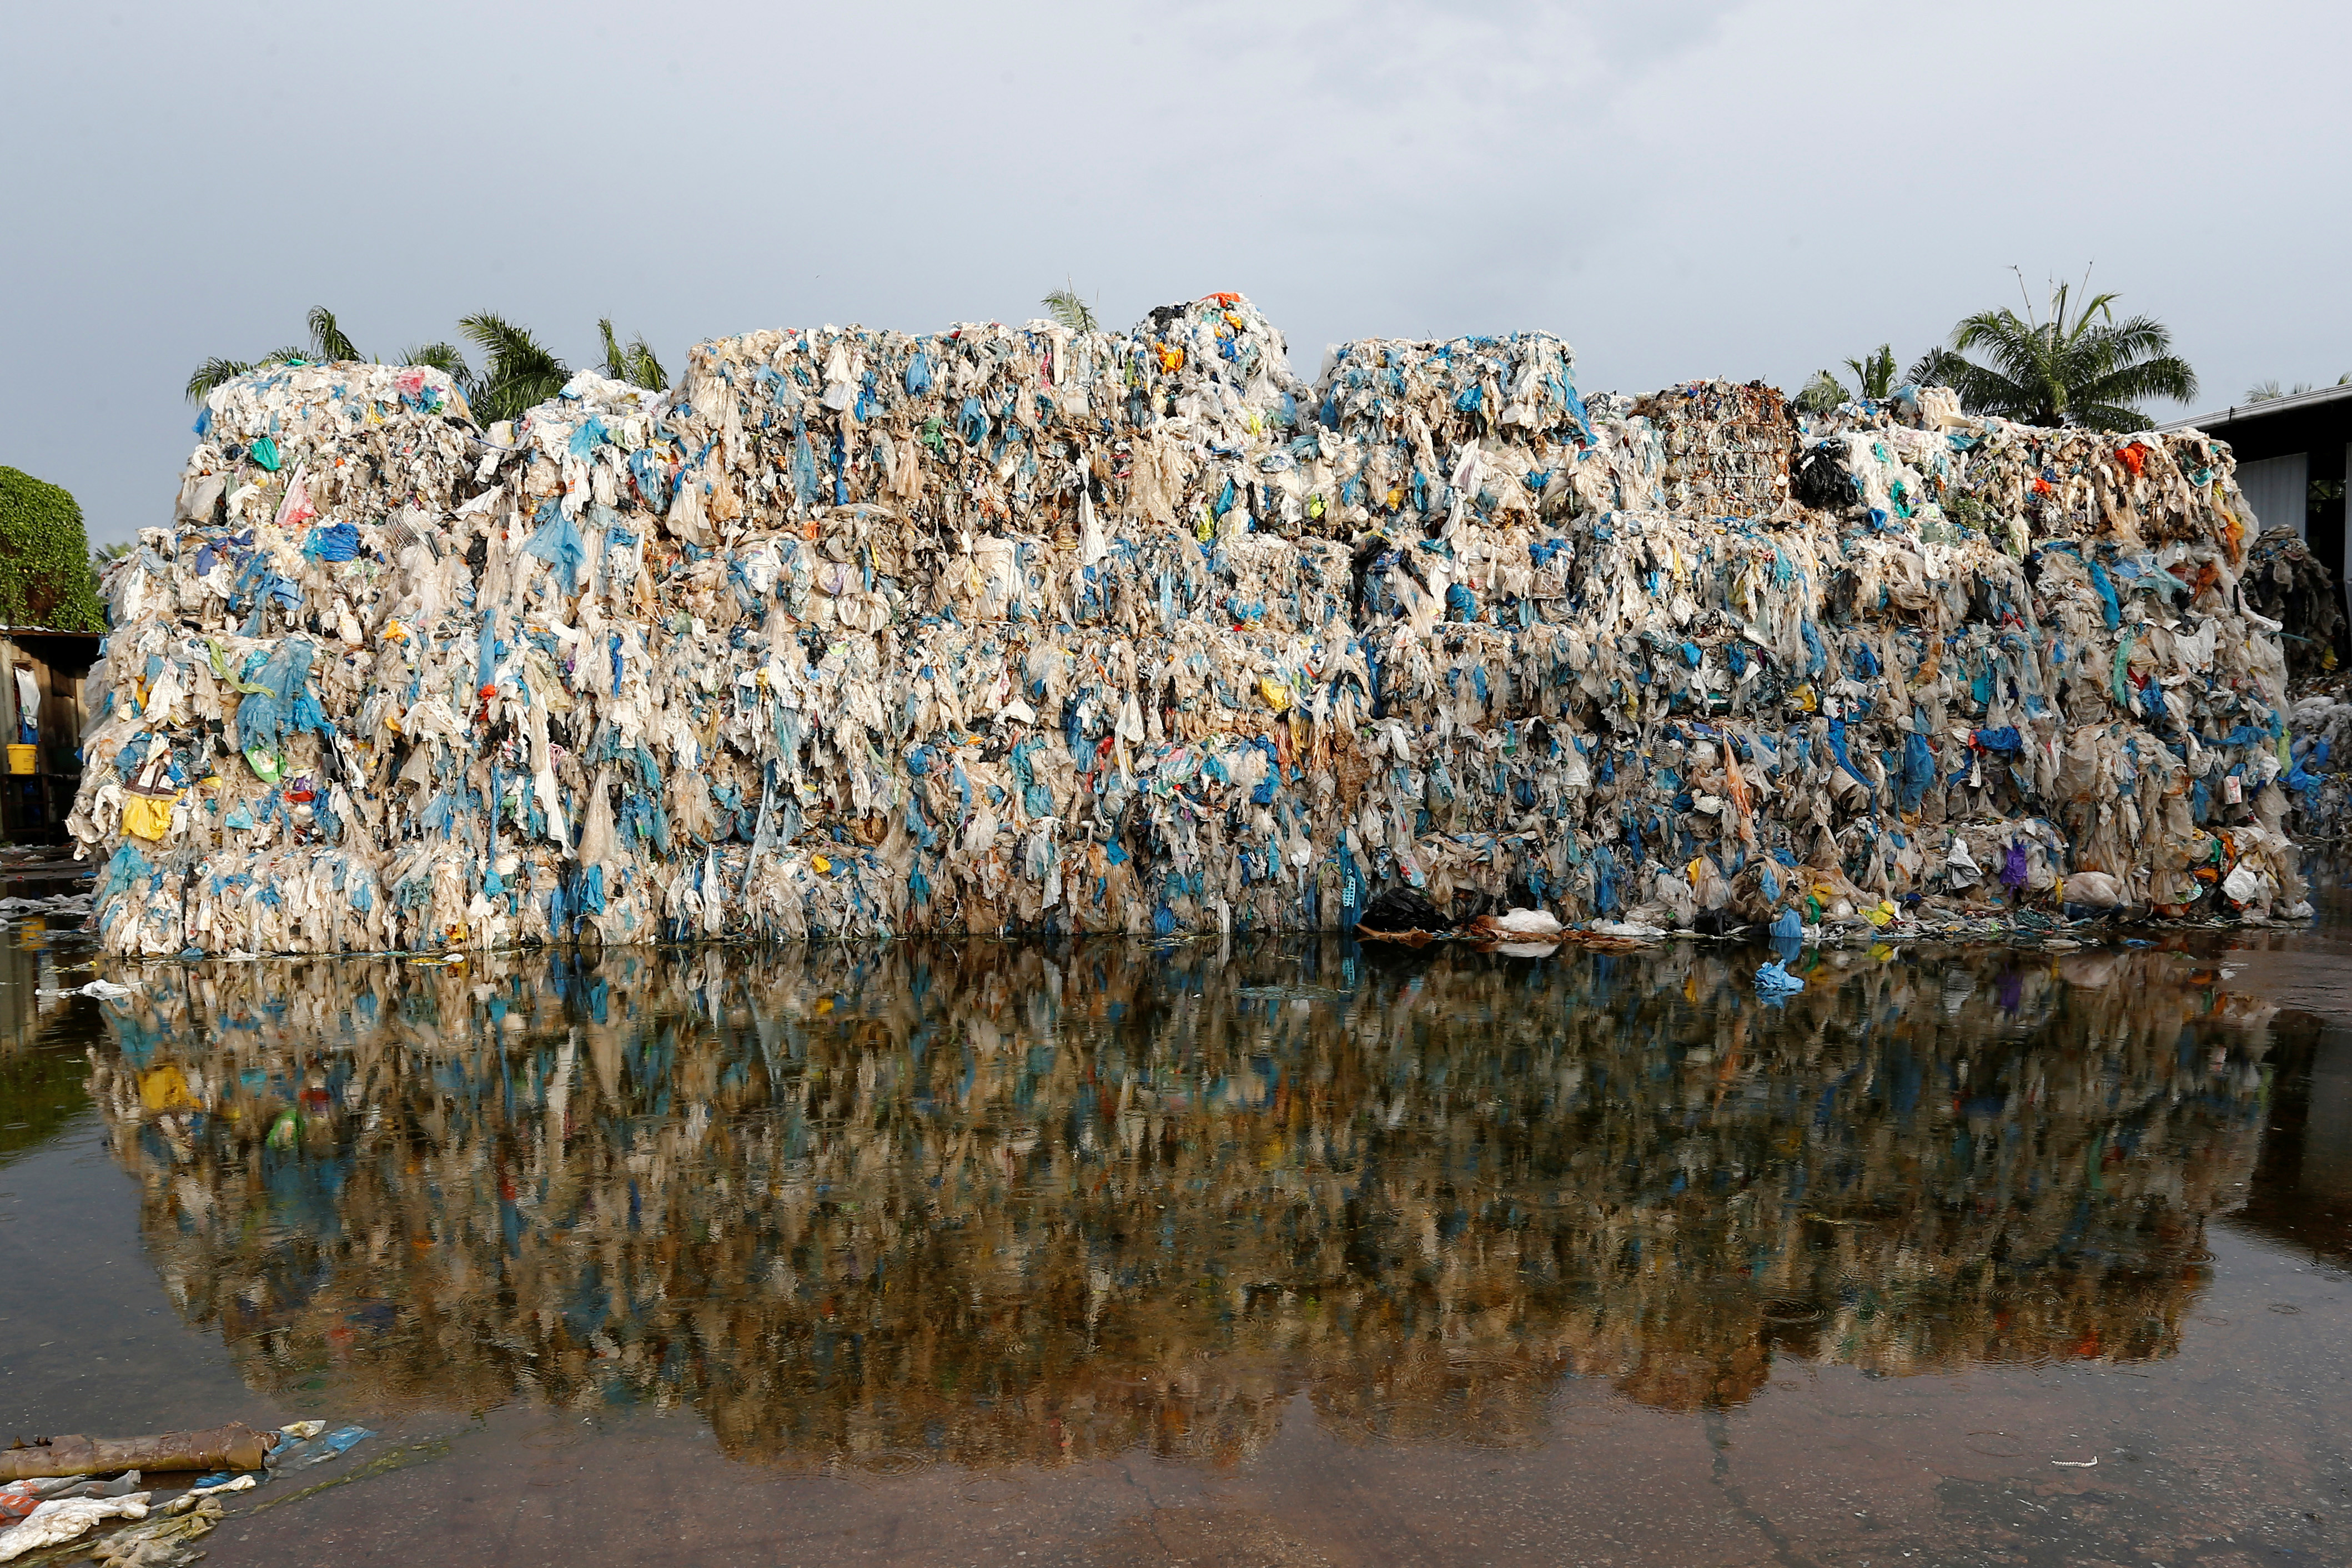 Plastic waste piled outside an illegal recycling factory in Jenjarom, Kuala Langat, Malaysia October 14, 2018. Picture taken October 14, 2018. REUTERS/Lai Seng Sin     TPX IMAGES OF THE DAY - RC11BAB877D0